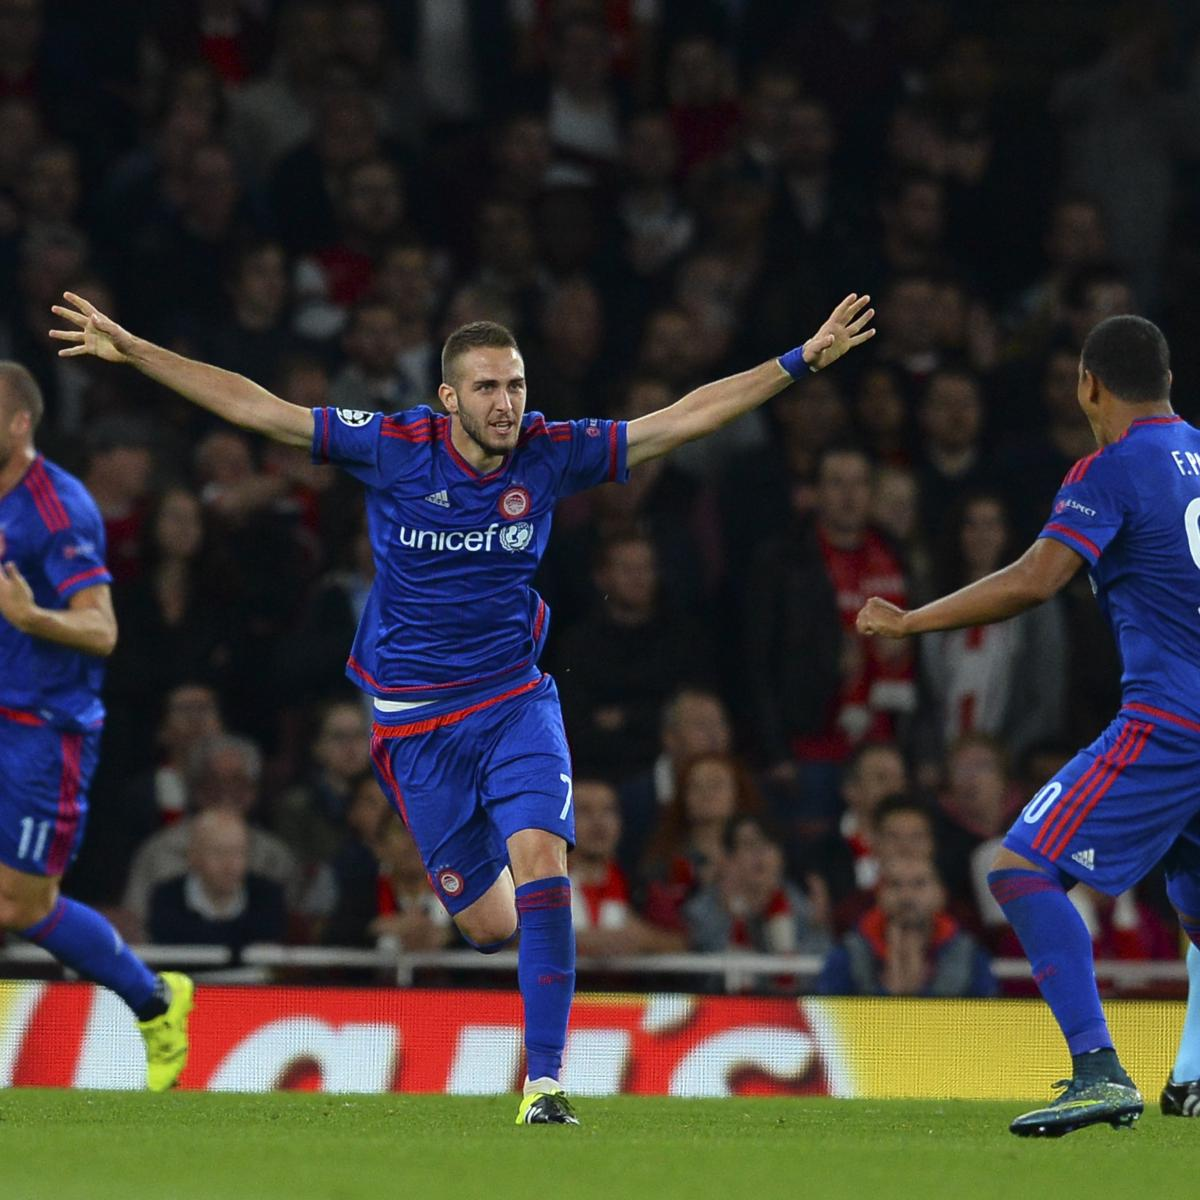 Arsenal vs. Olympiakos: Live Score, Highlights from